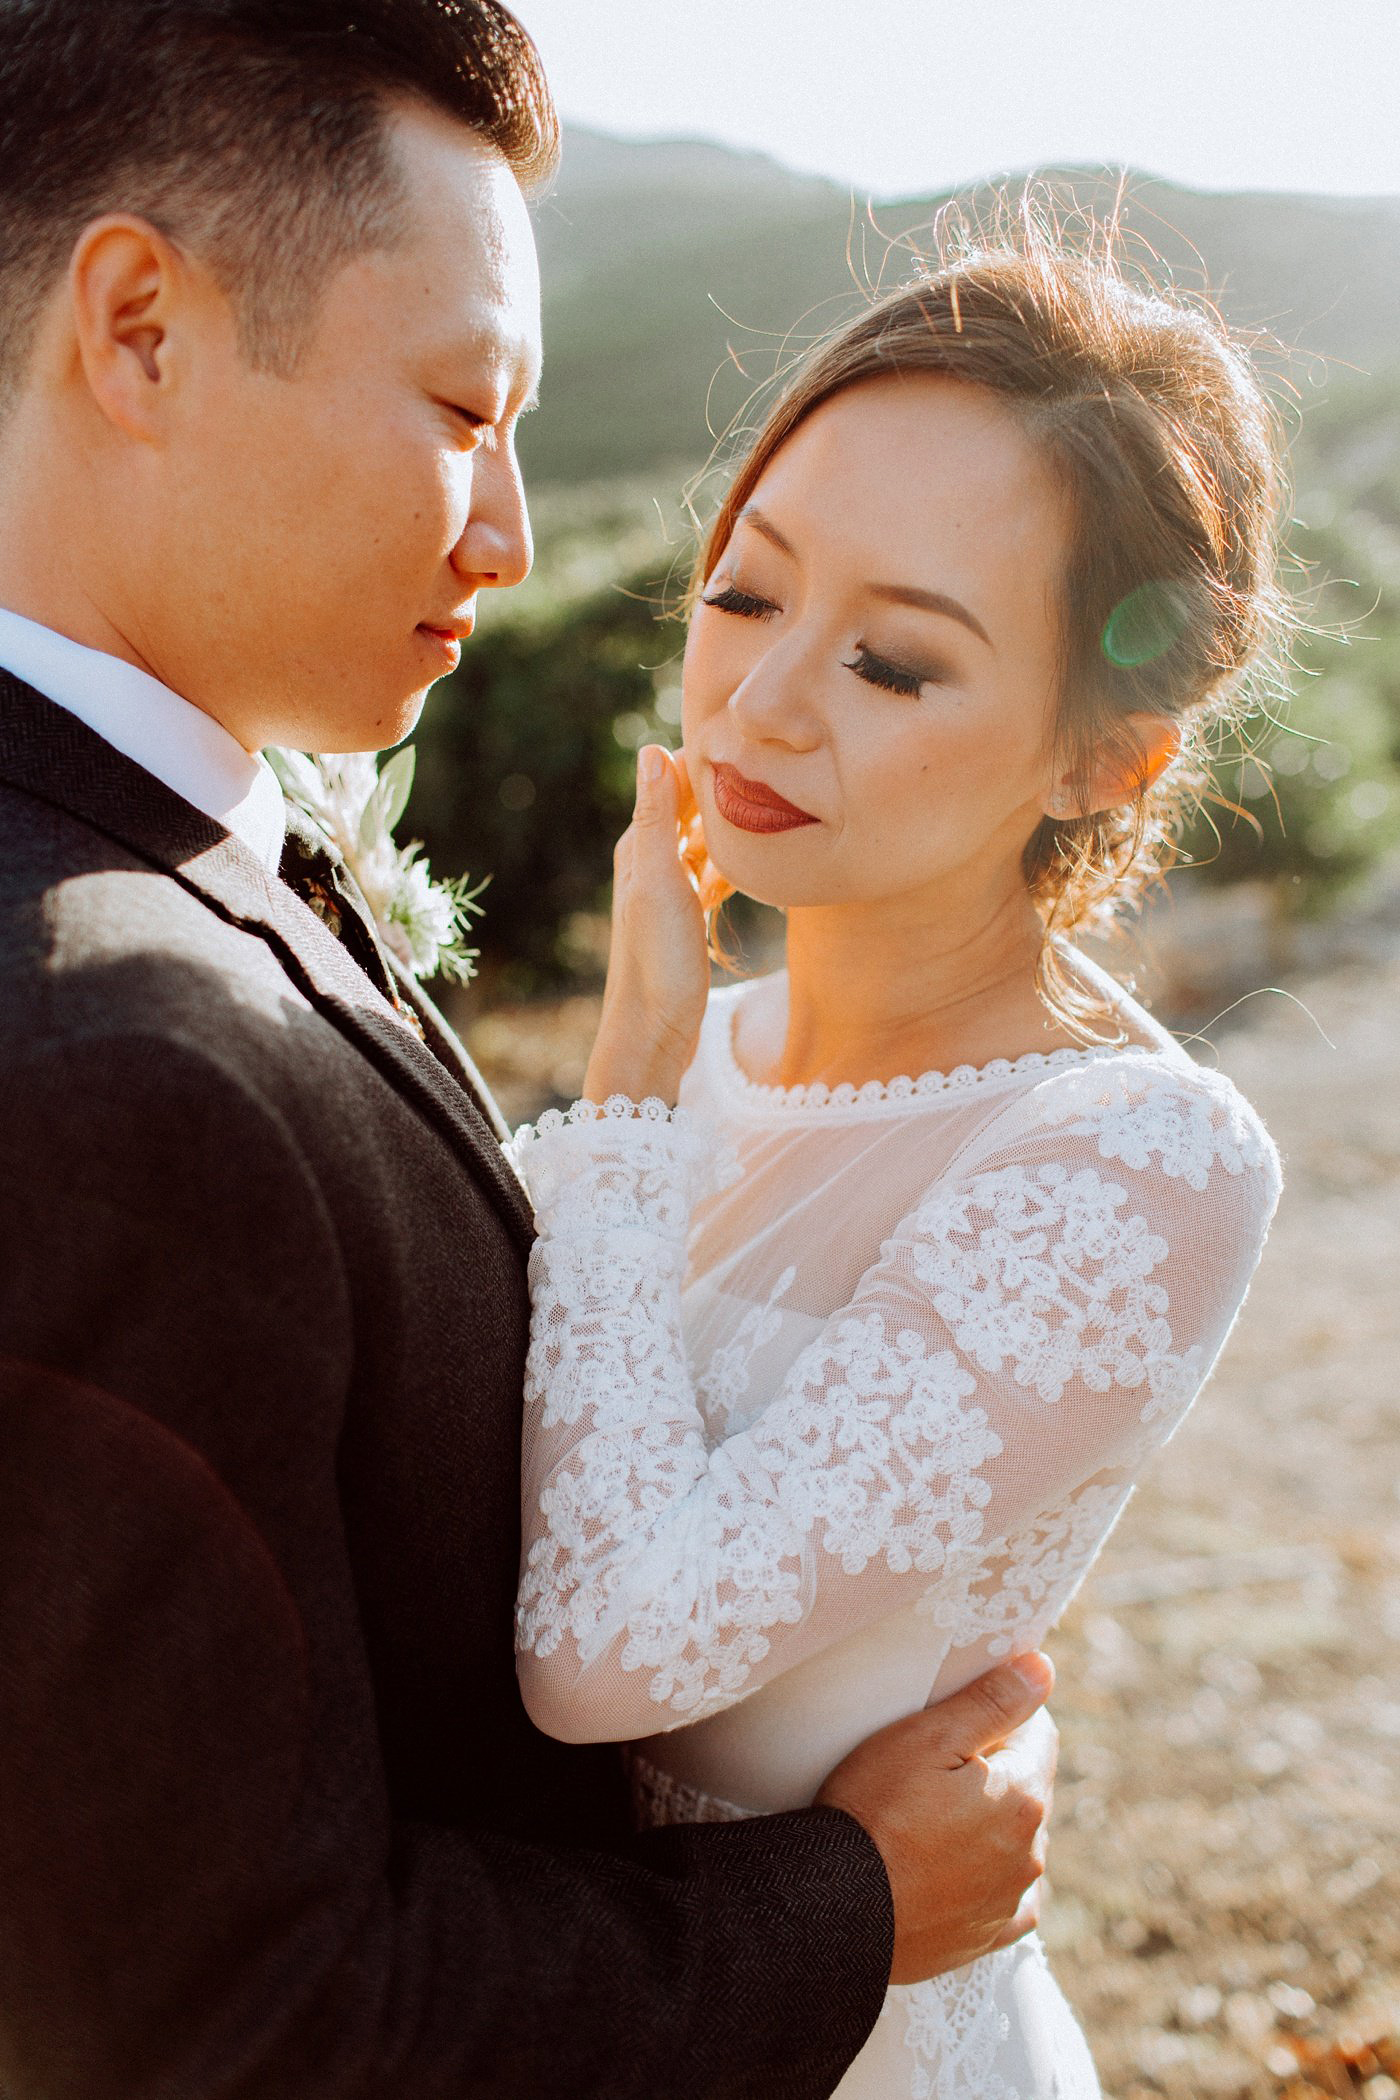 bold lipstick bride and groom embrace close up